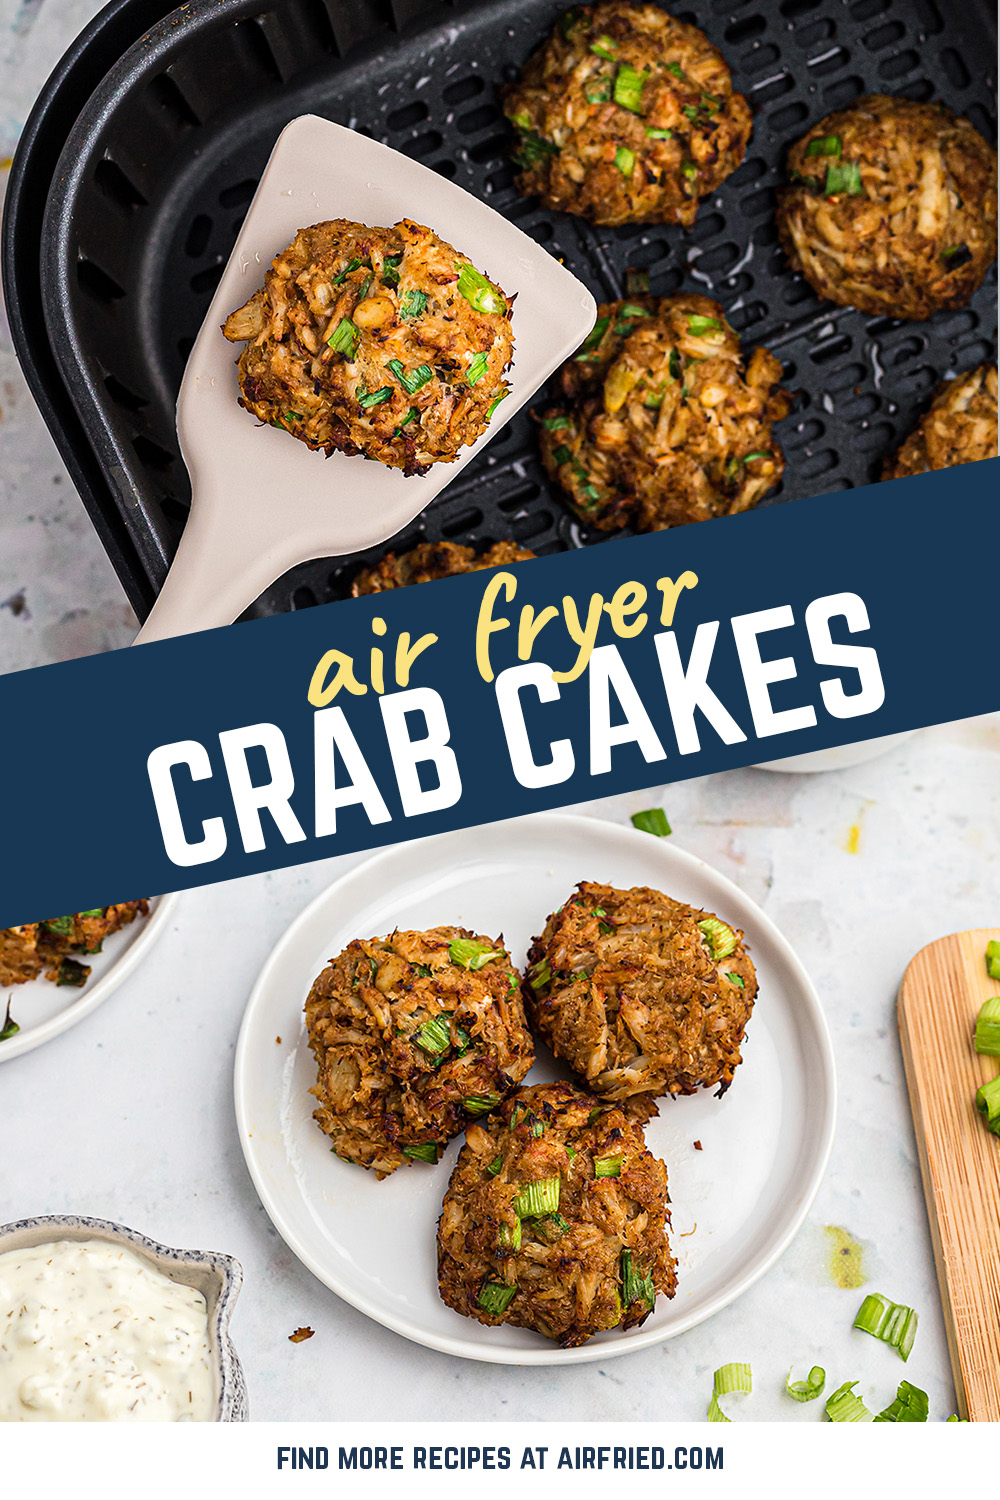 I loved these crab cakes that came out of my air fryer!  They are a little smoky and made with claw meat. #airfried #recipes #seafood